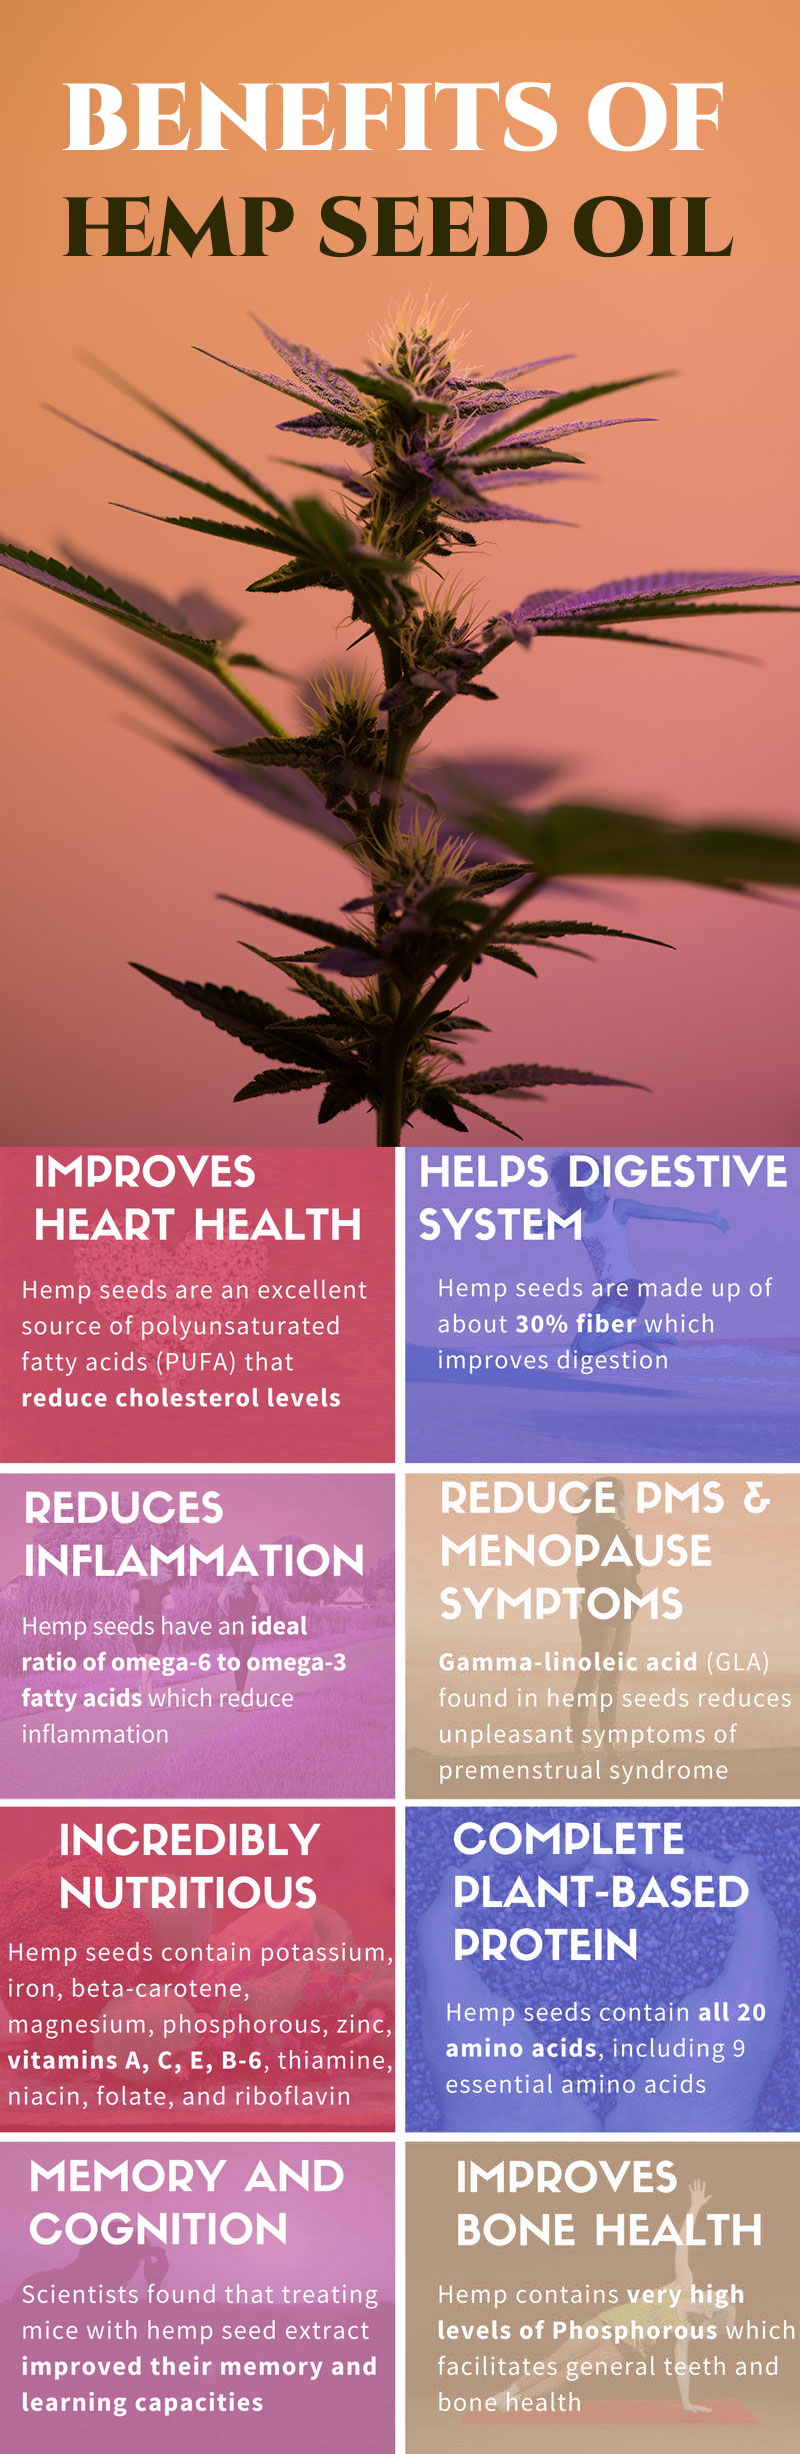 hemp-seed-oil-Infographic.